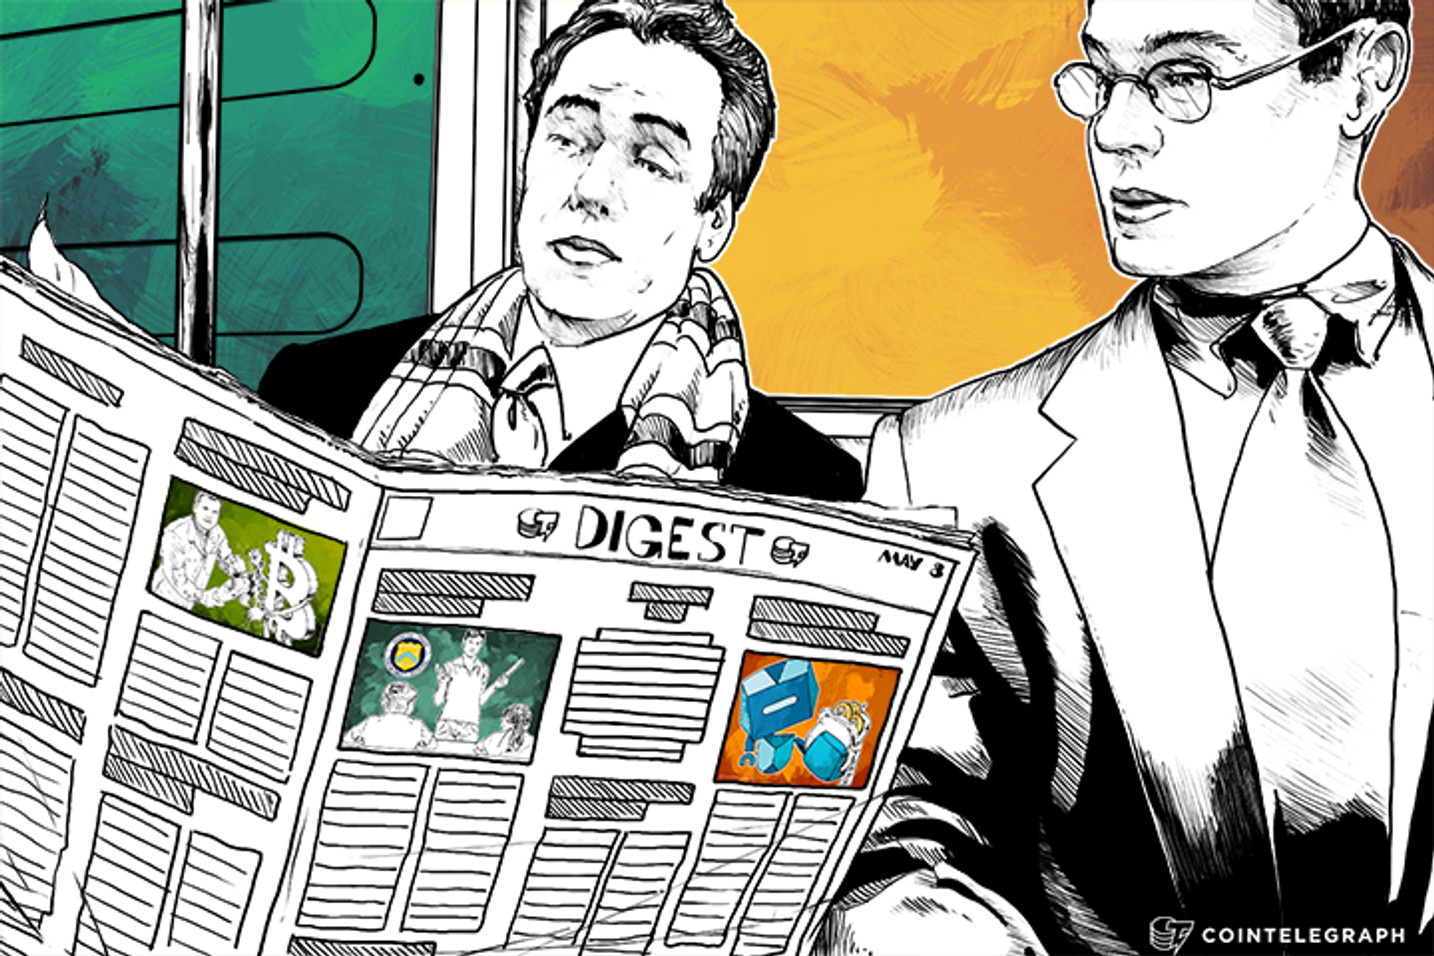 MAY 8 DIGEST: Bitcoin Exchange ItBit Raises $25m And Opens Shop in US, BitPagos Strikes Deal With Big Mexican E-Commerce Partner